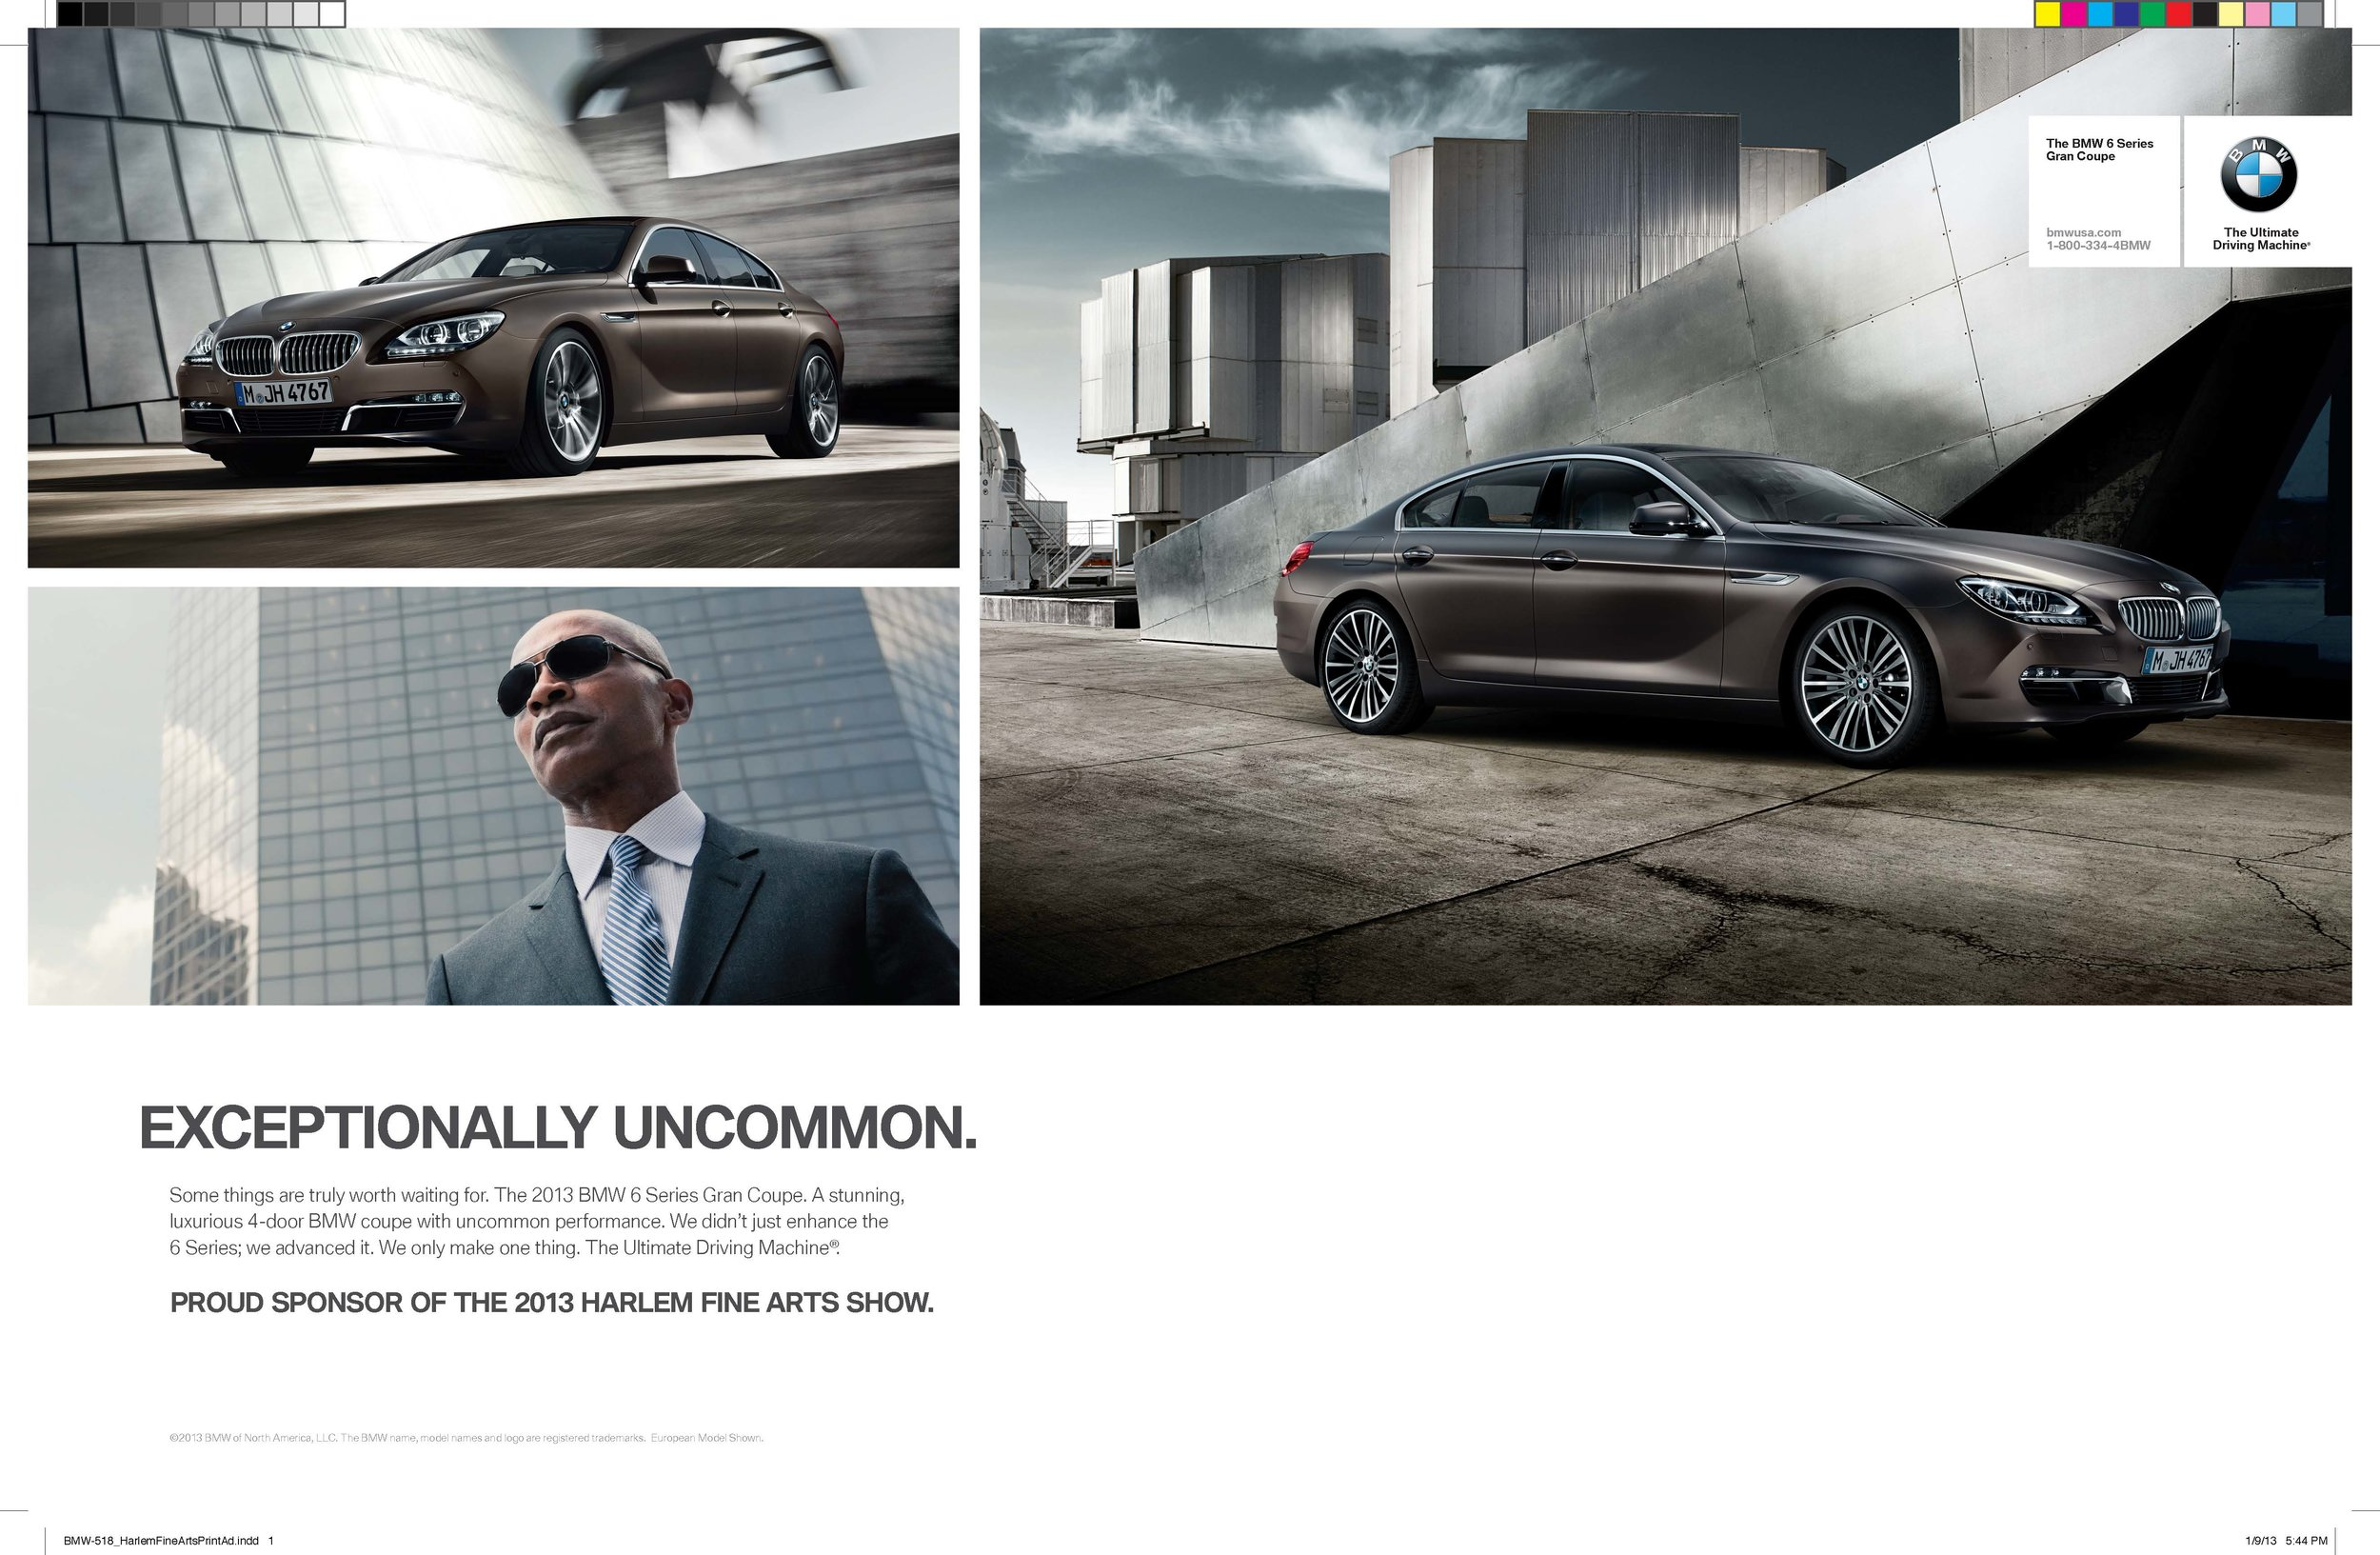 BMW 6 Series Gran Coupe Multicultural Inside Cover Spread in Harlem Fine Arts